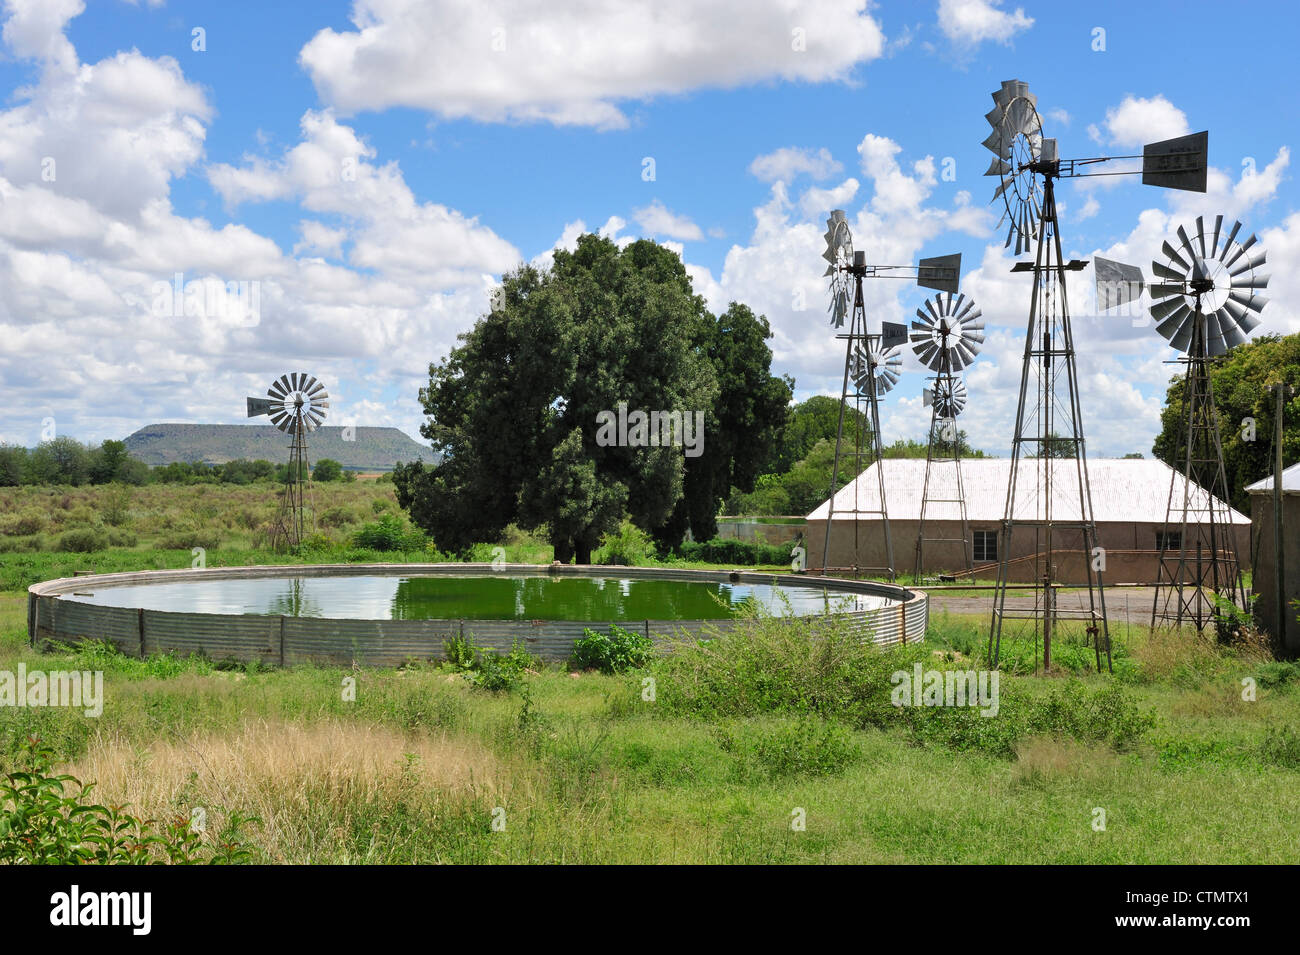 Karoo sheep farm, windmills and storage reservoir, Karoo, South Africa - Stock Image